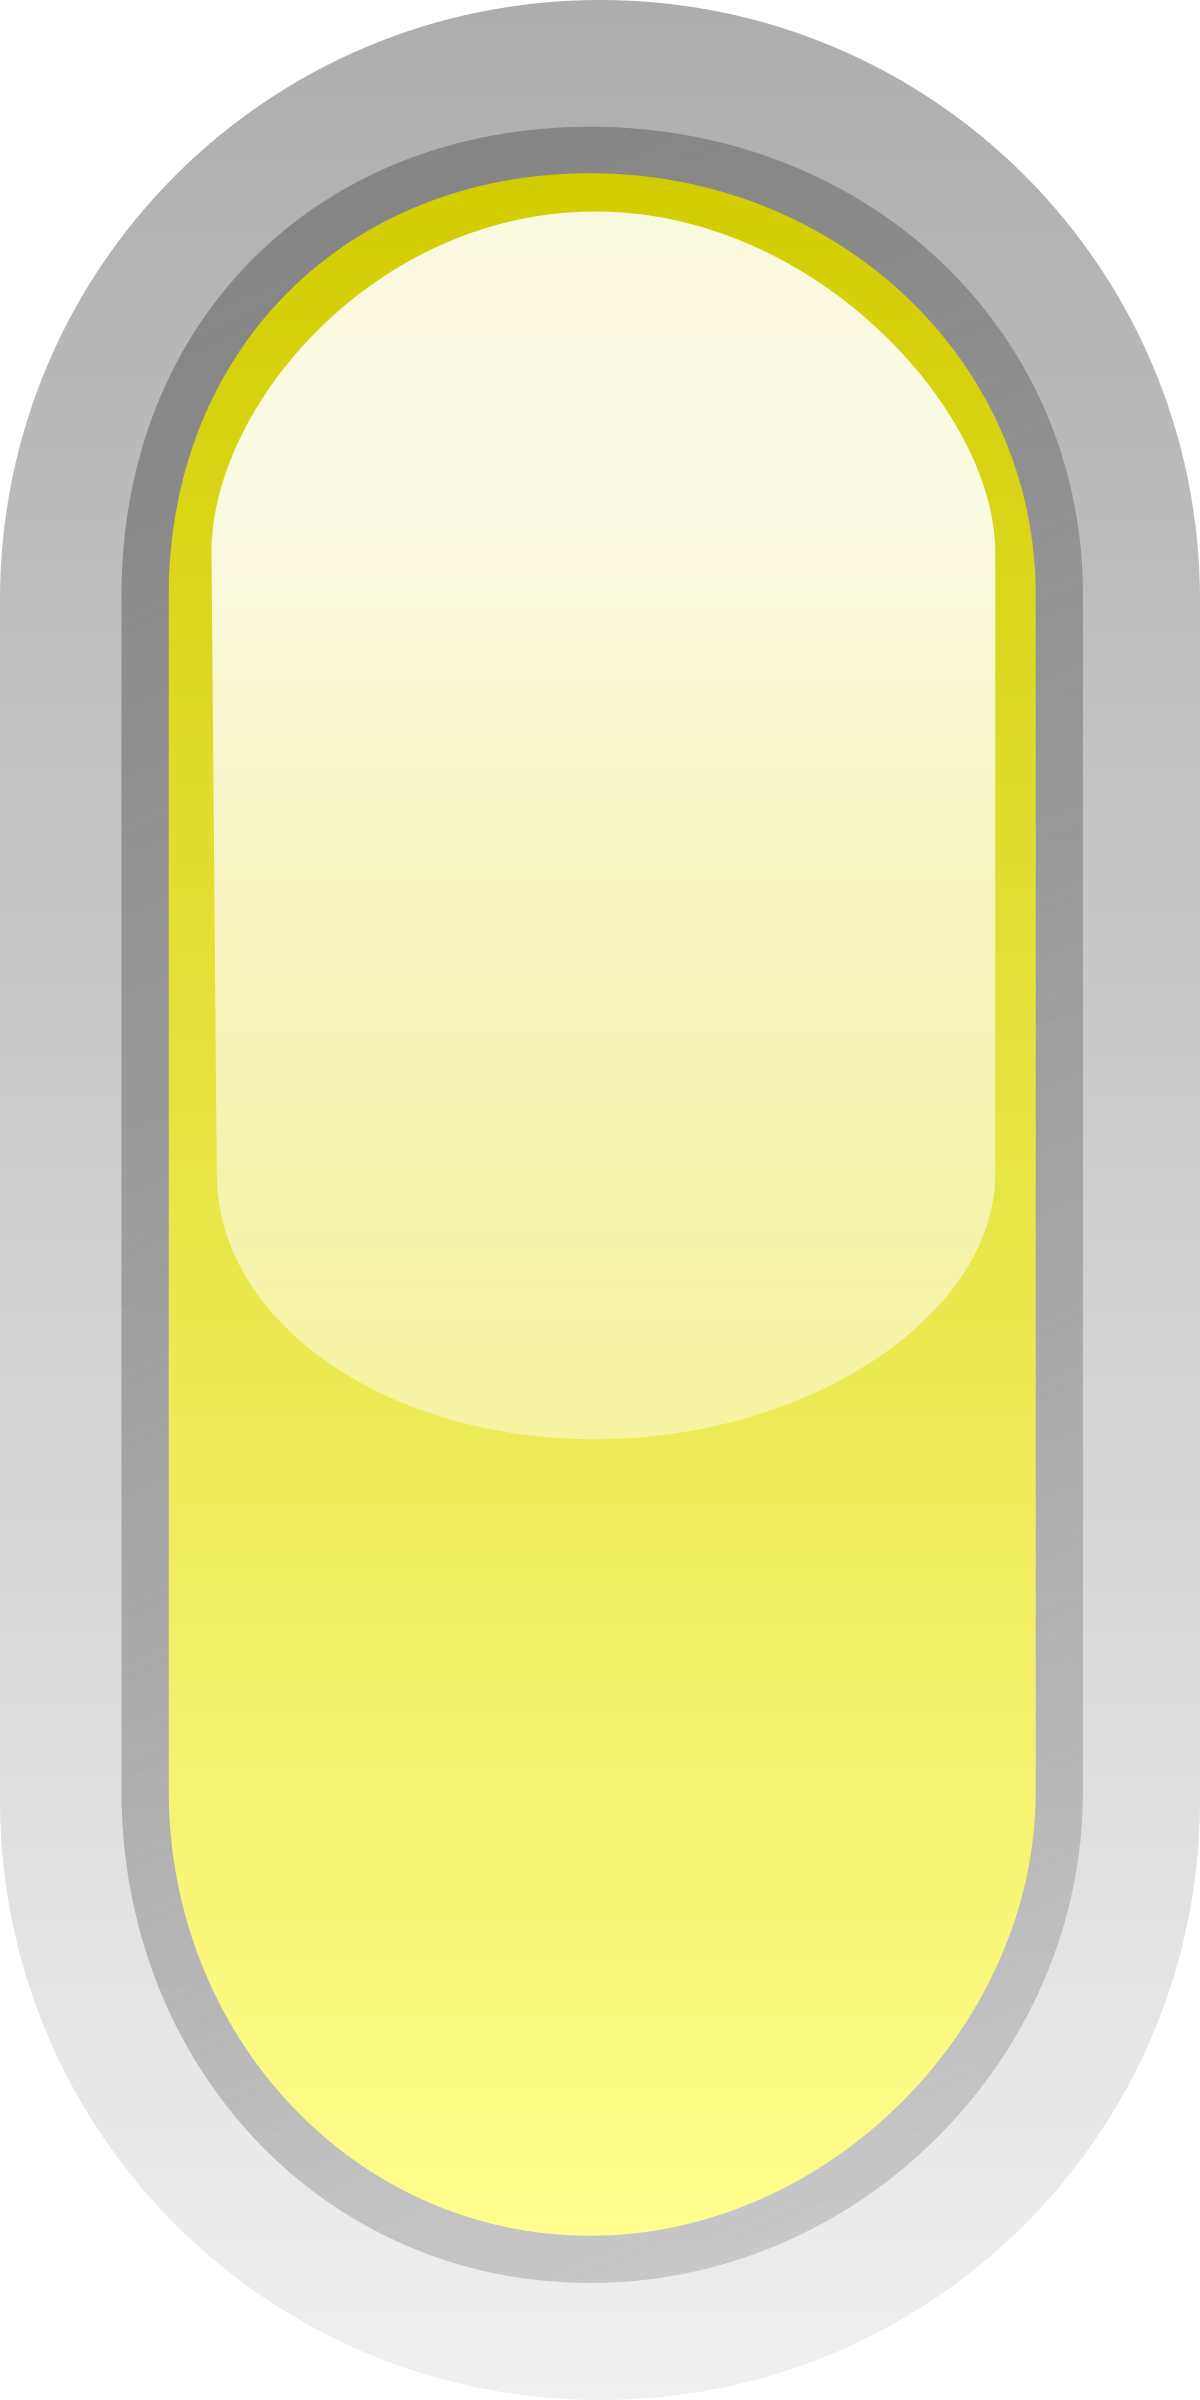 led rounded v yellow by jean_victor_balin